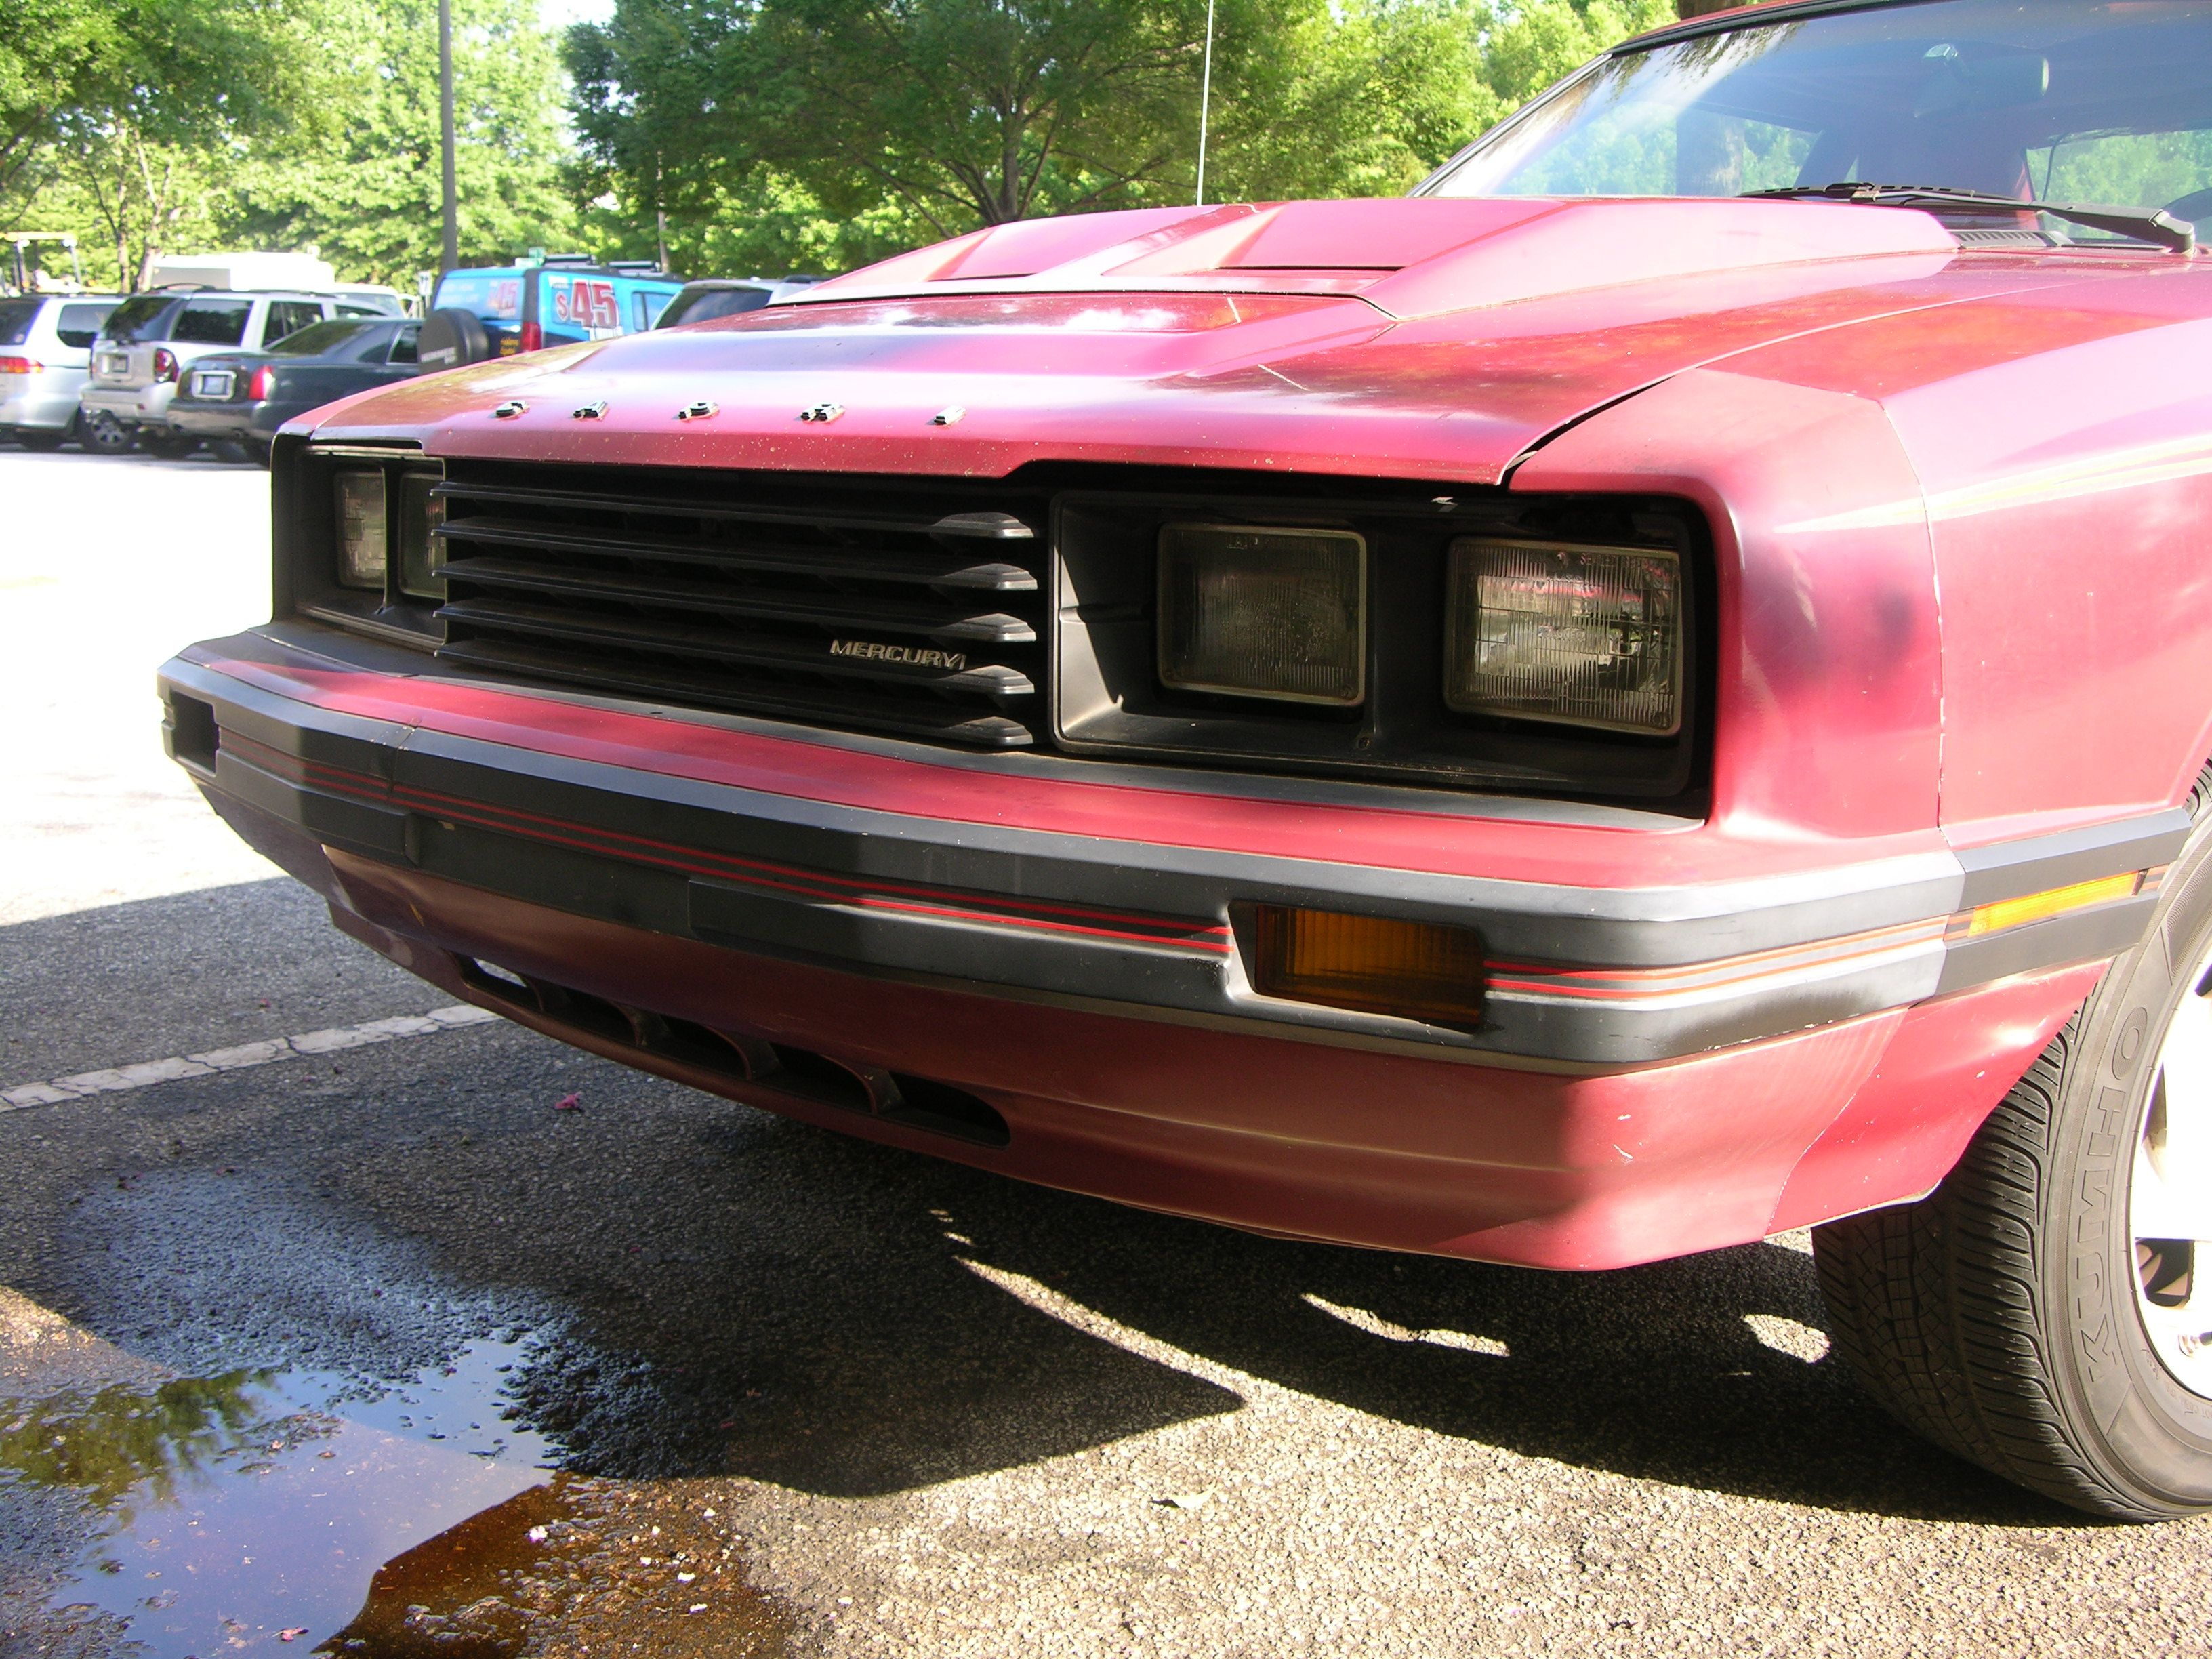 William mccluskey brought his rare 1982 capri rs by mustangs unlimited to pick up a few